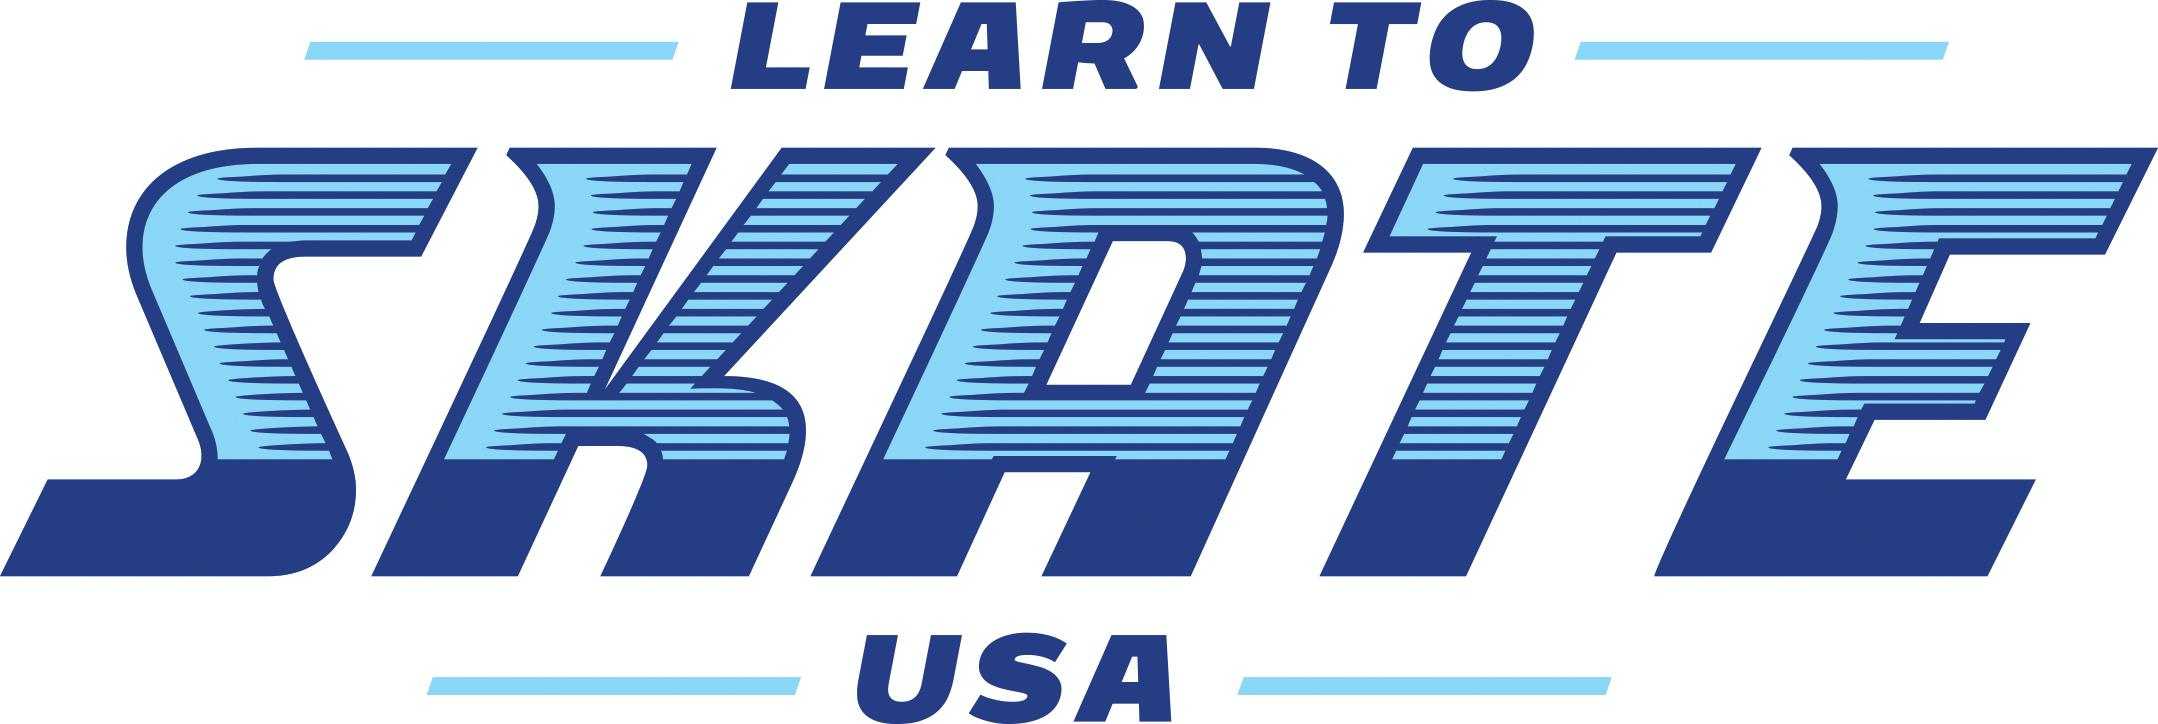 Image of Learn to Skate USA logo